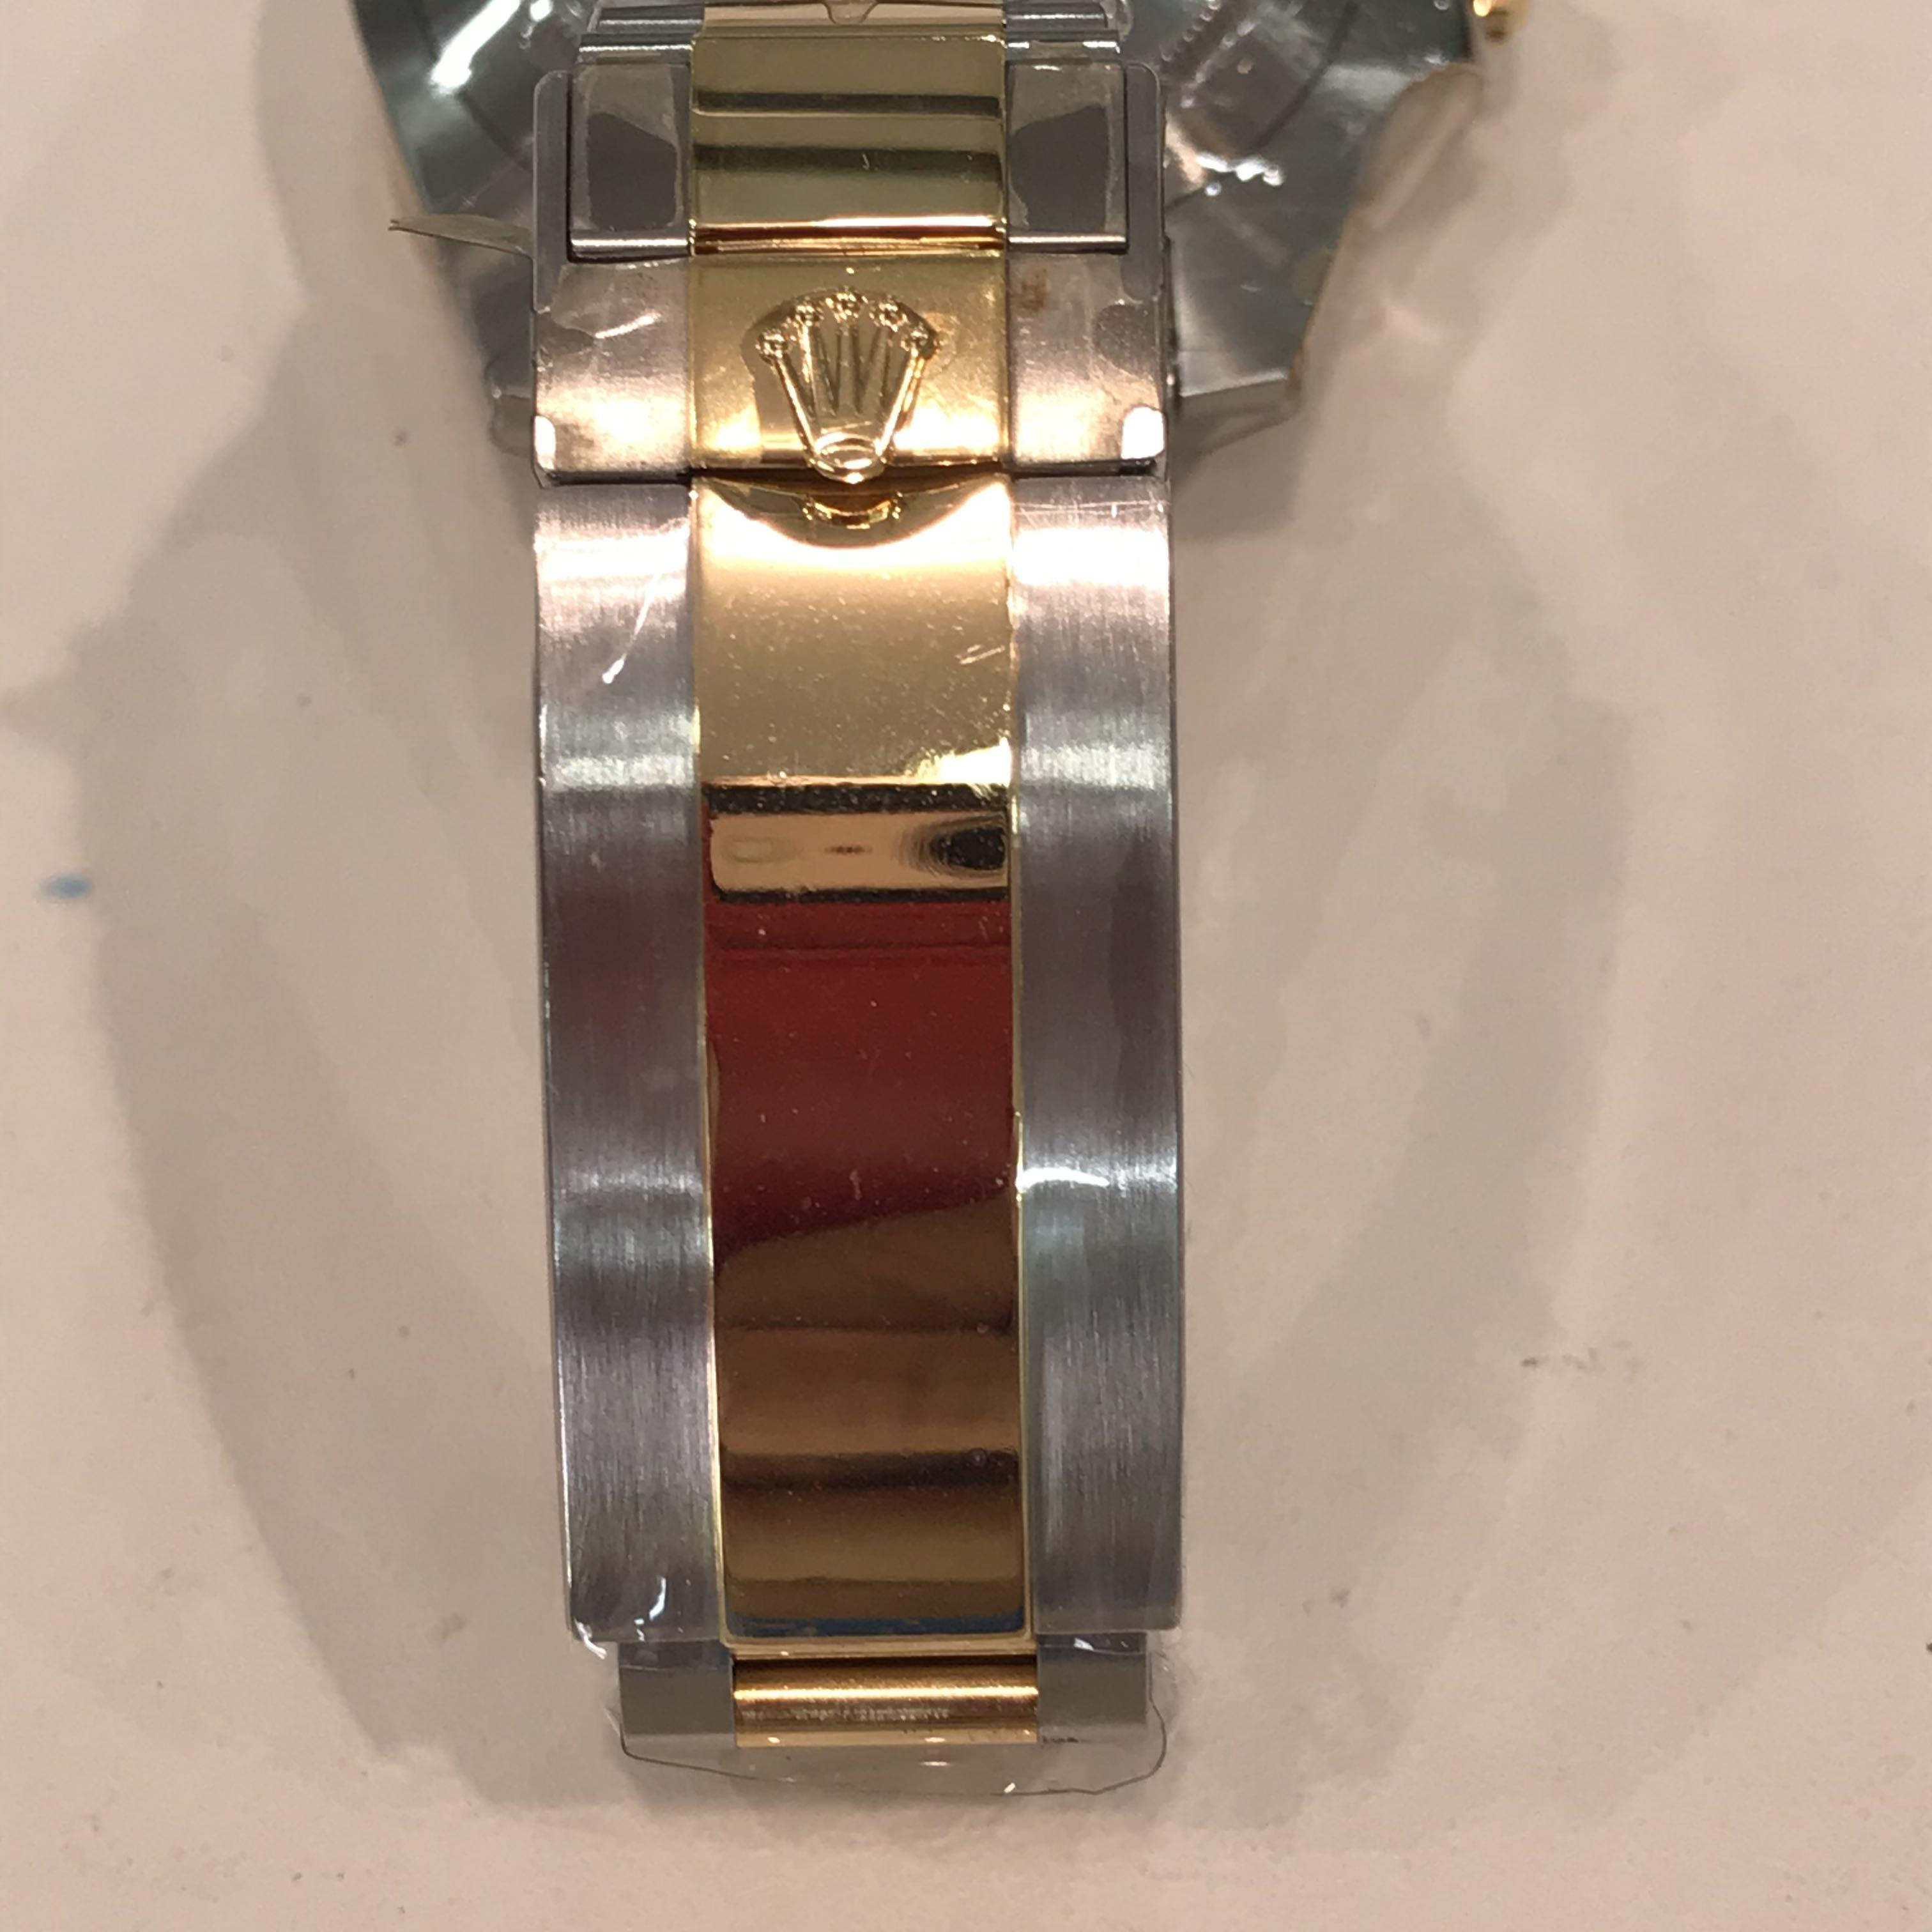 CLEARANCE SALES {Luxury Dress Watch - ROLEX} Authentic ROLEX OYSTER PERPETUAL SUBMARINE DATE 40mm Blue Dial Model 116613LB Come With Original Bezel & Half Gold Bracelet